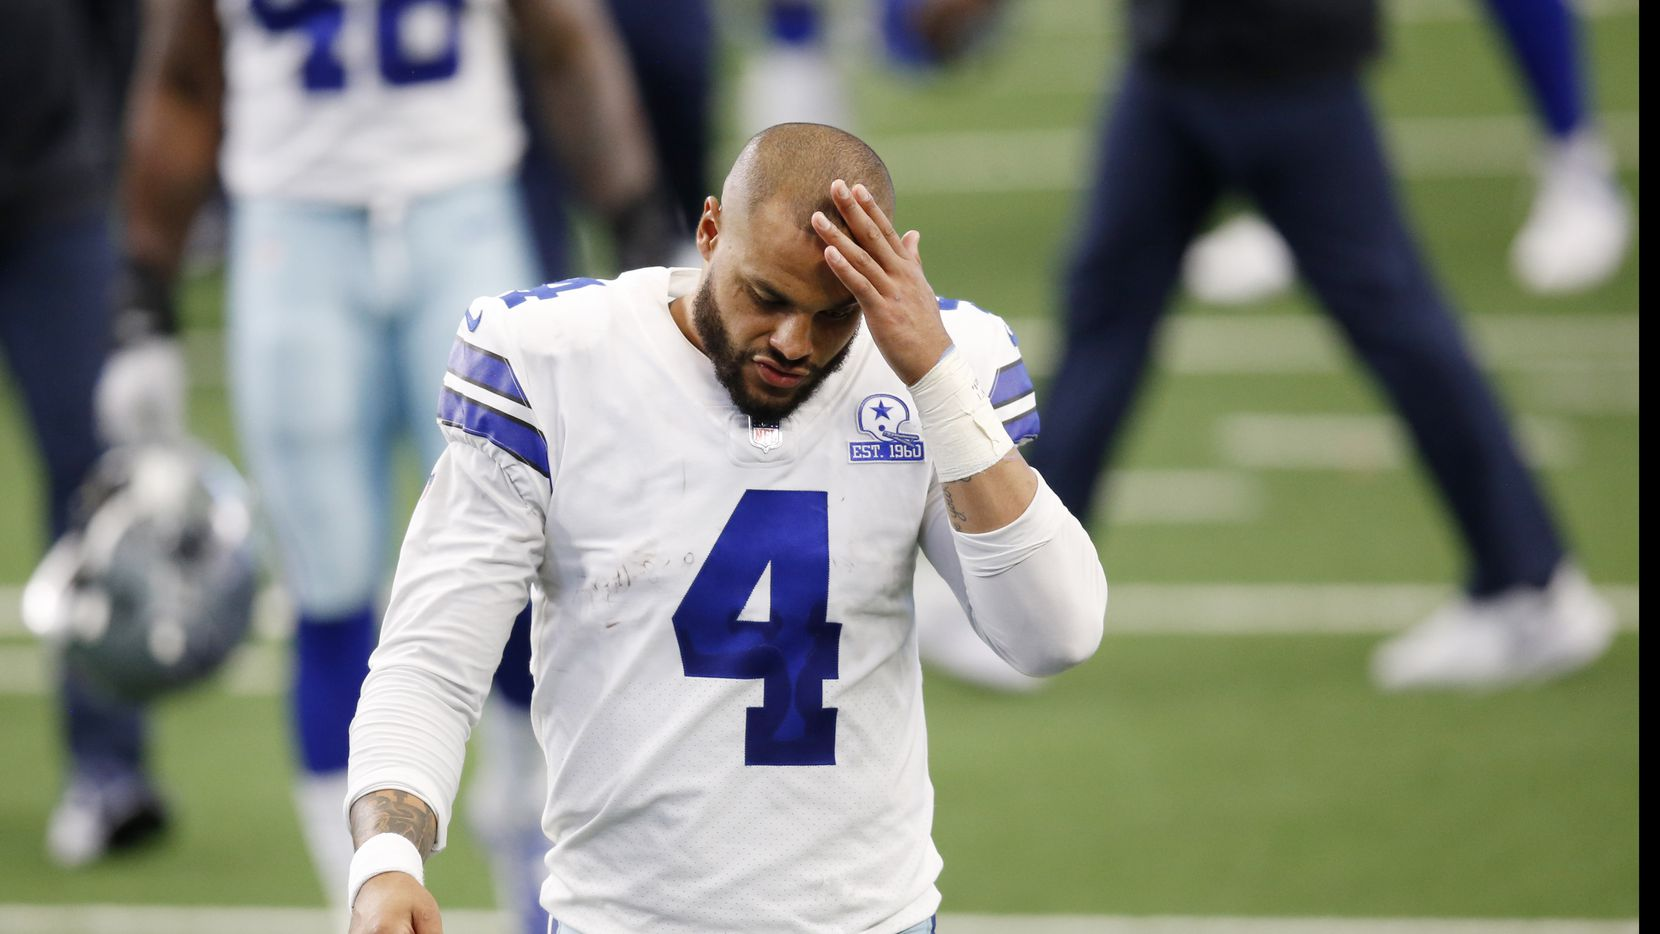 Dallas Cowboys quarterback Dak Prescott (4) makes his way off the field after losing to the Cleveland Browns 49-38 at AT&T Stadium in Arlington, Texas on Saturday, October 4, 2020.